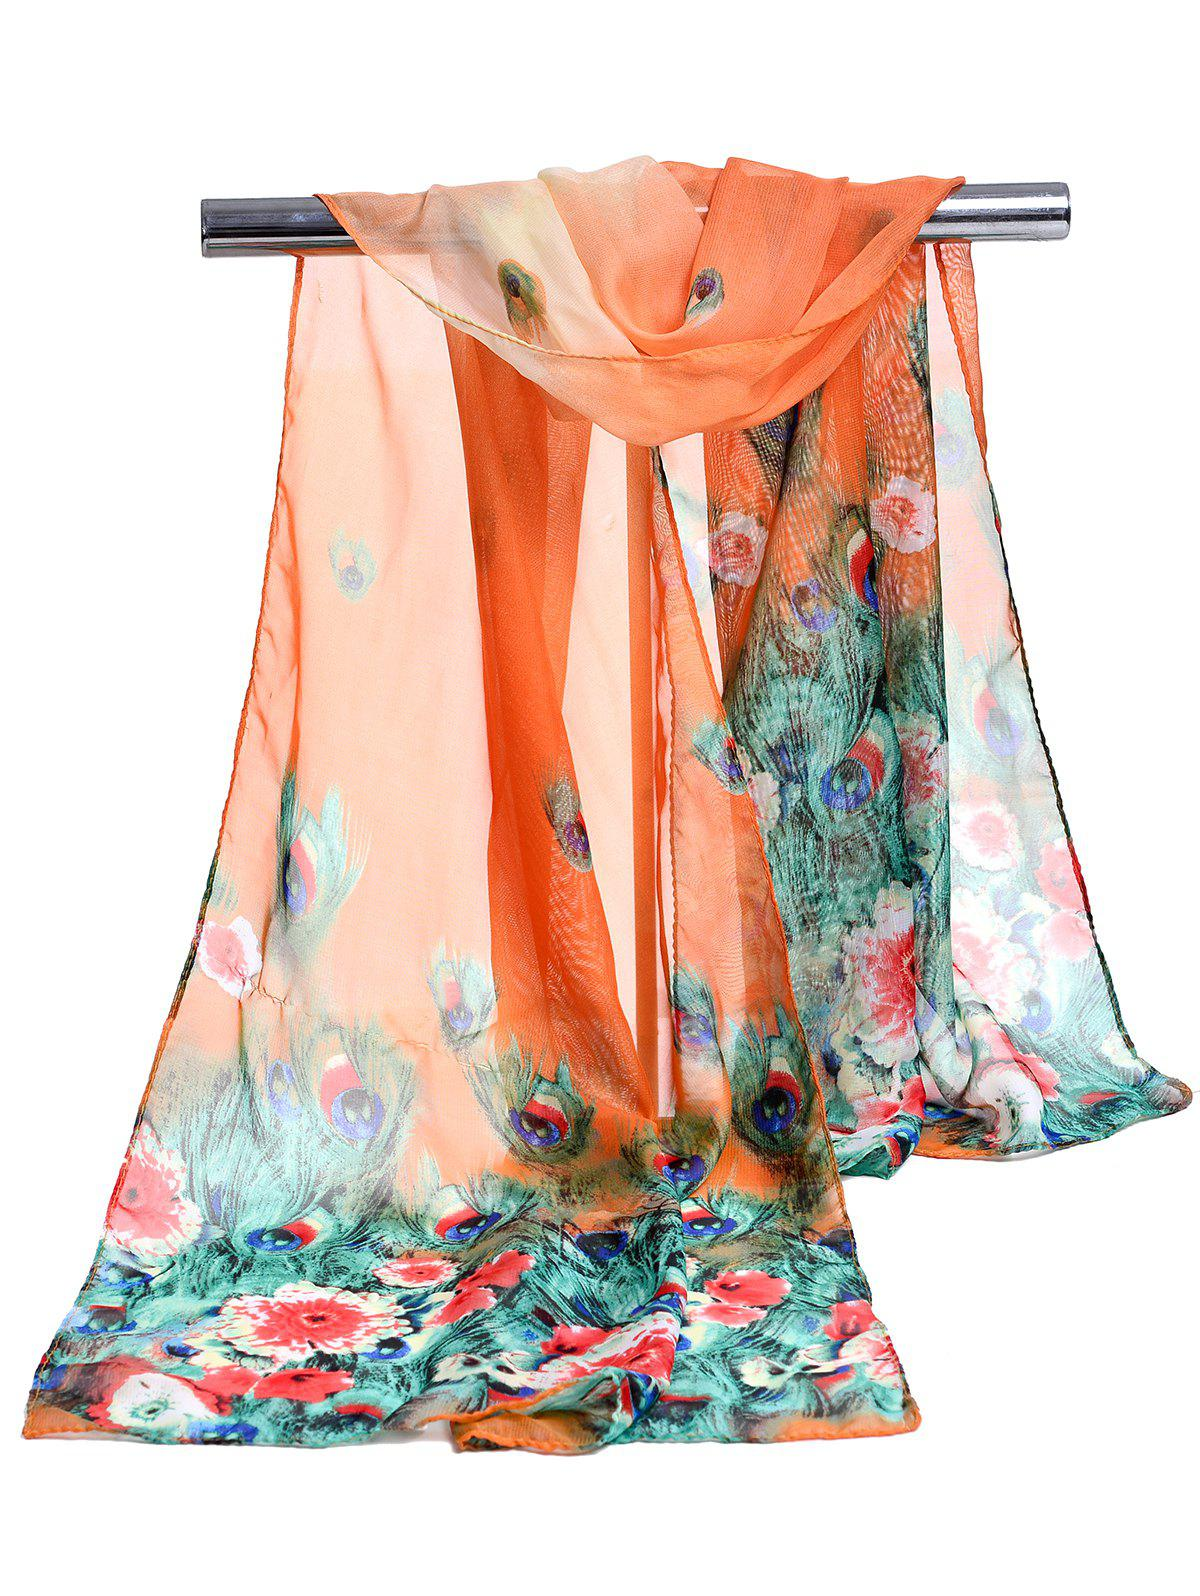 Peacock Feathers Pattern Soft Silky Scarf - ORANGE YELLOW